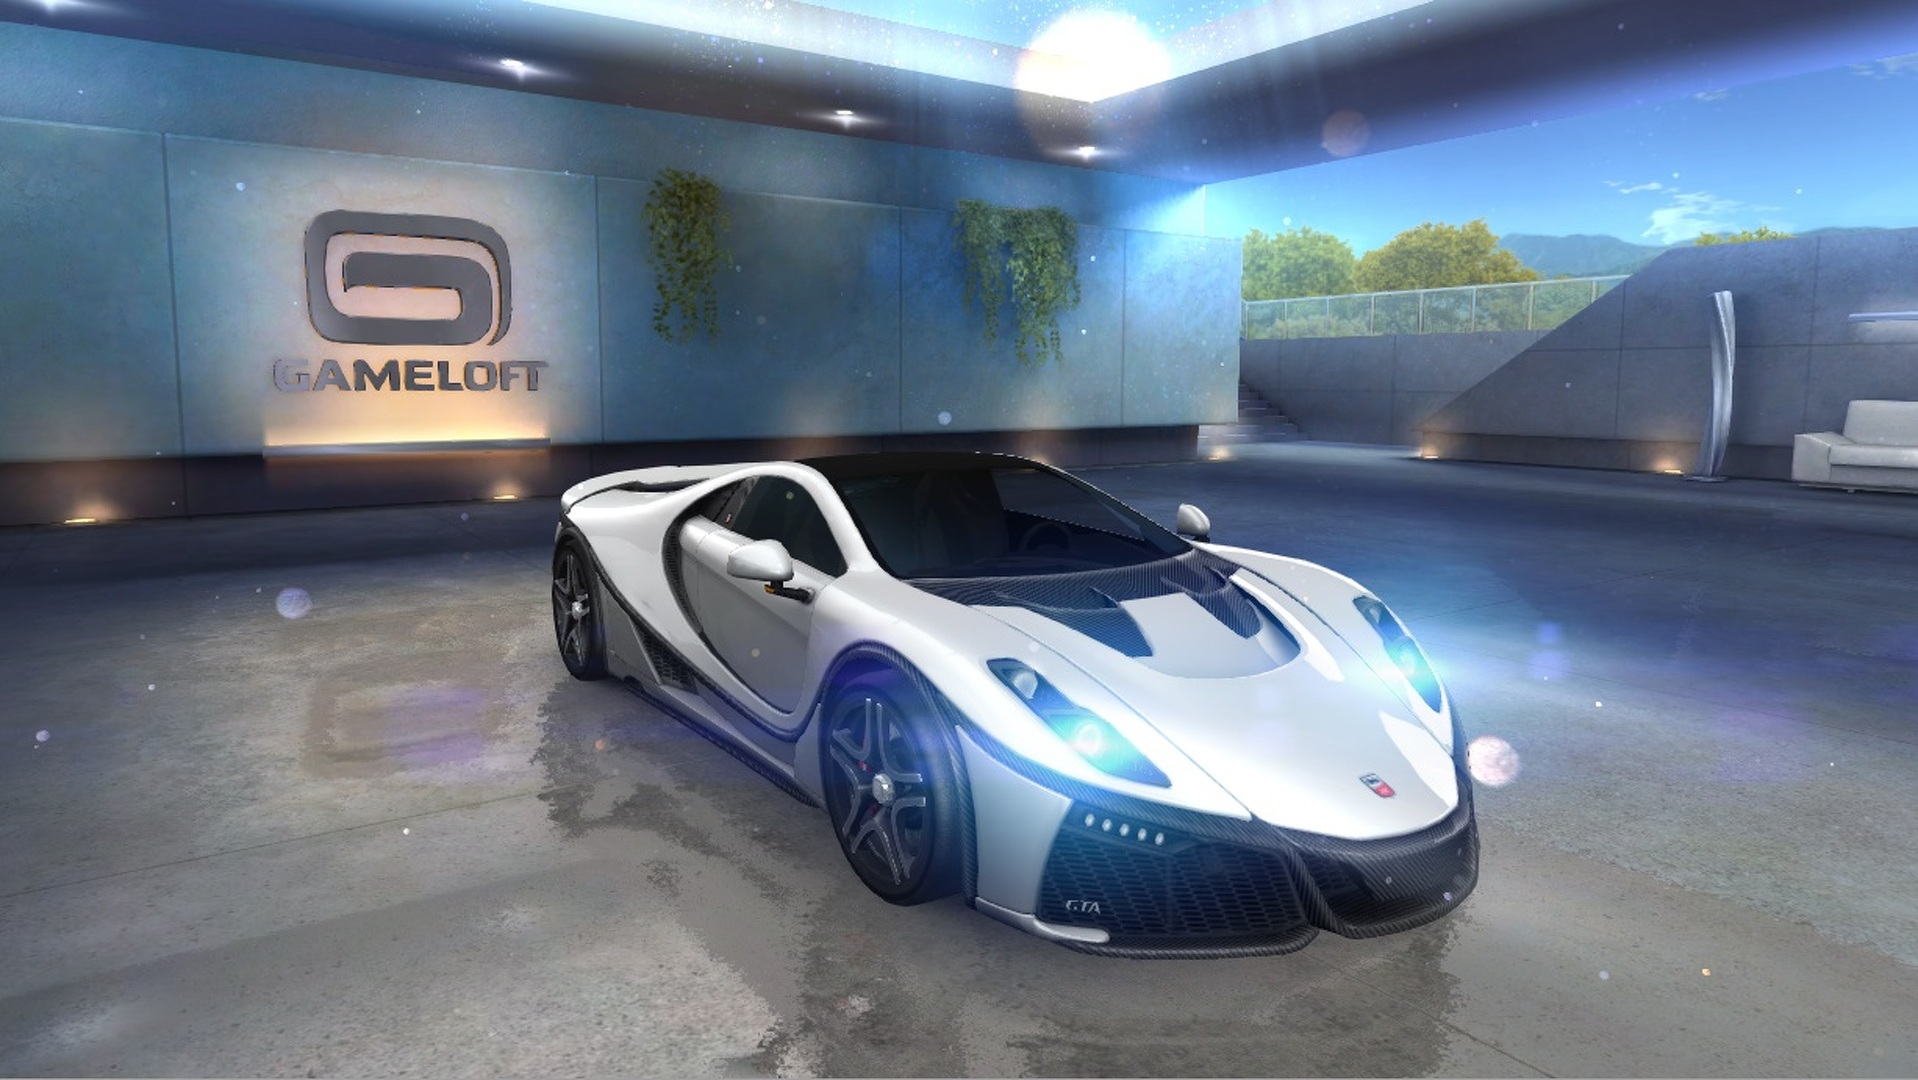 New Gta Spano Now Available In Asphalt 8 Airborne